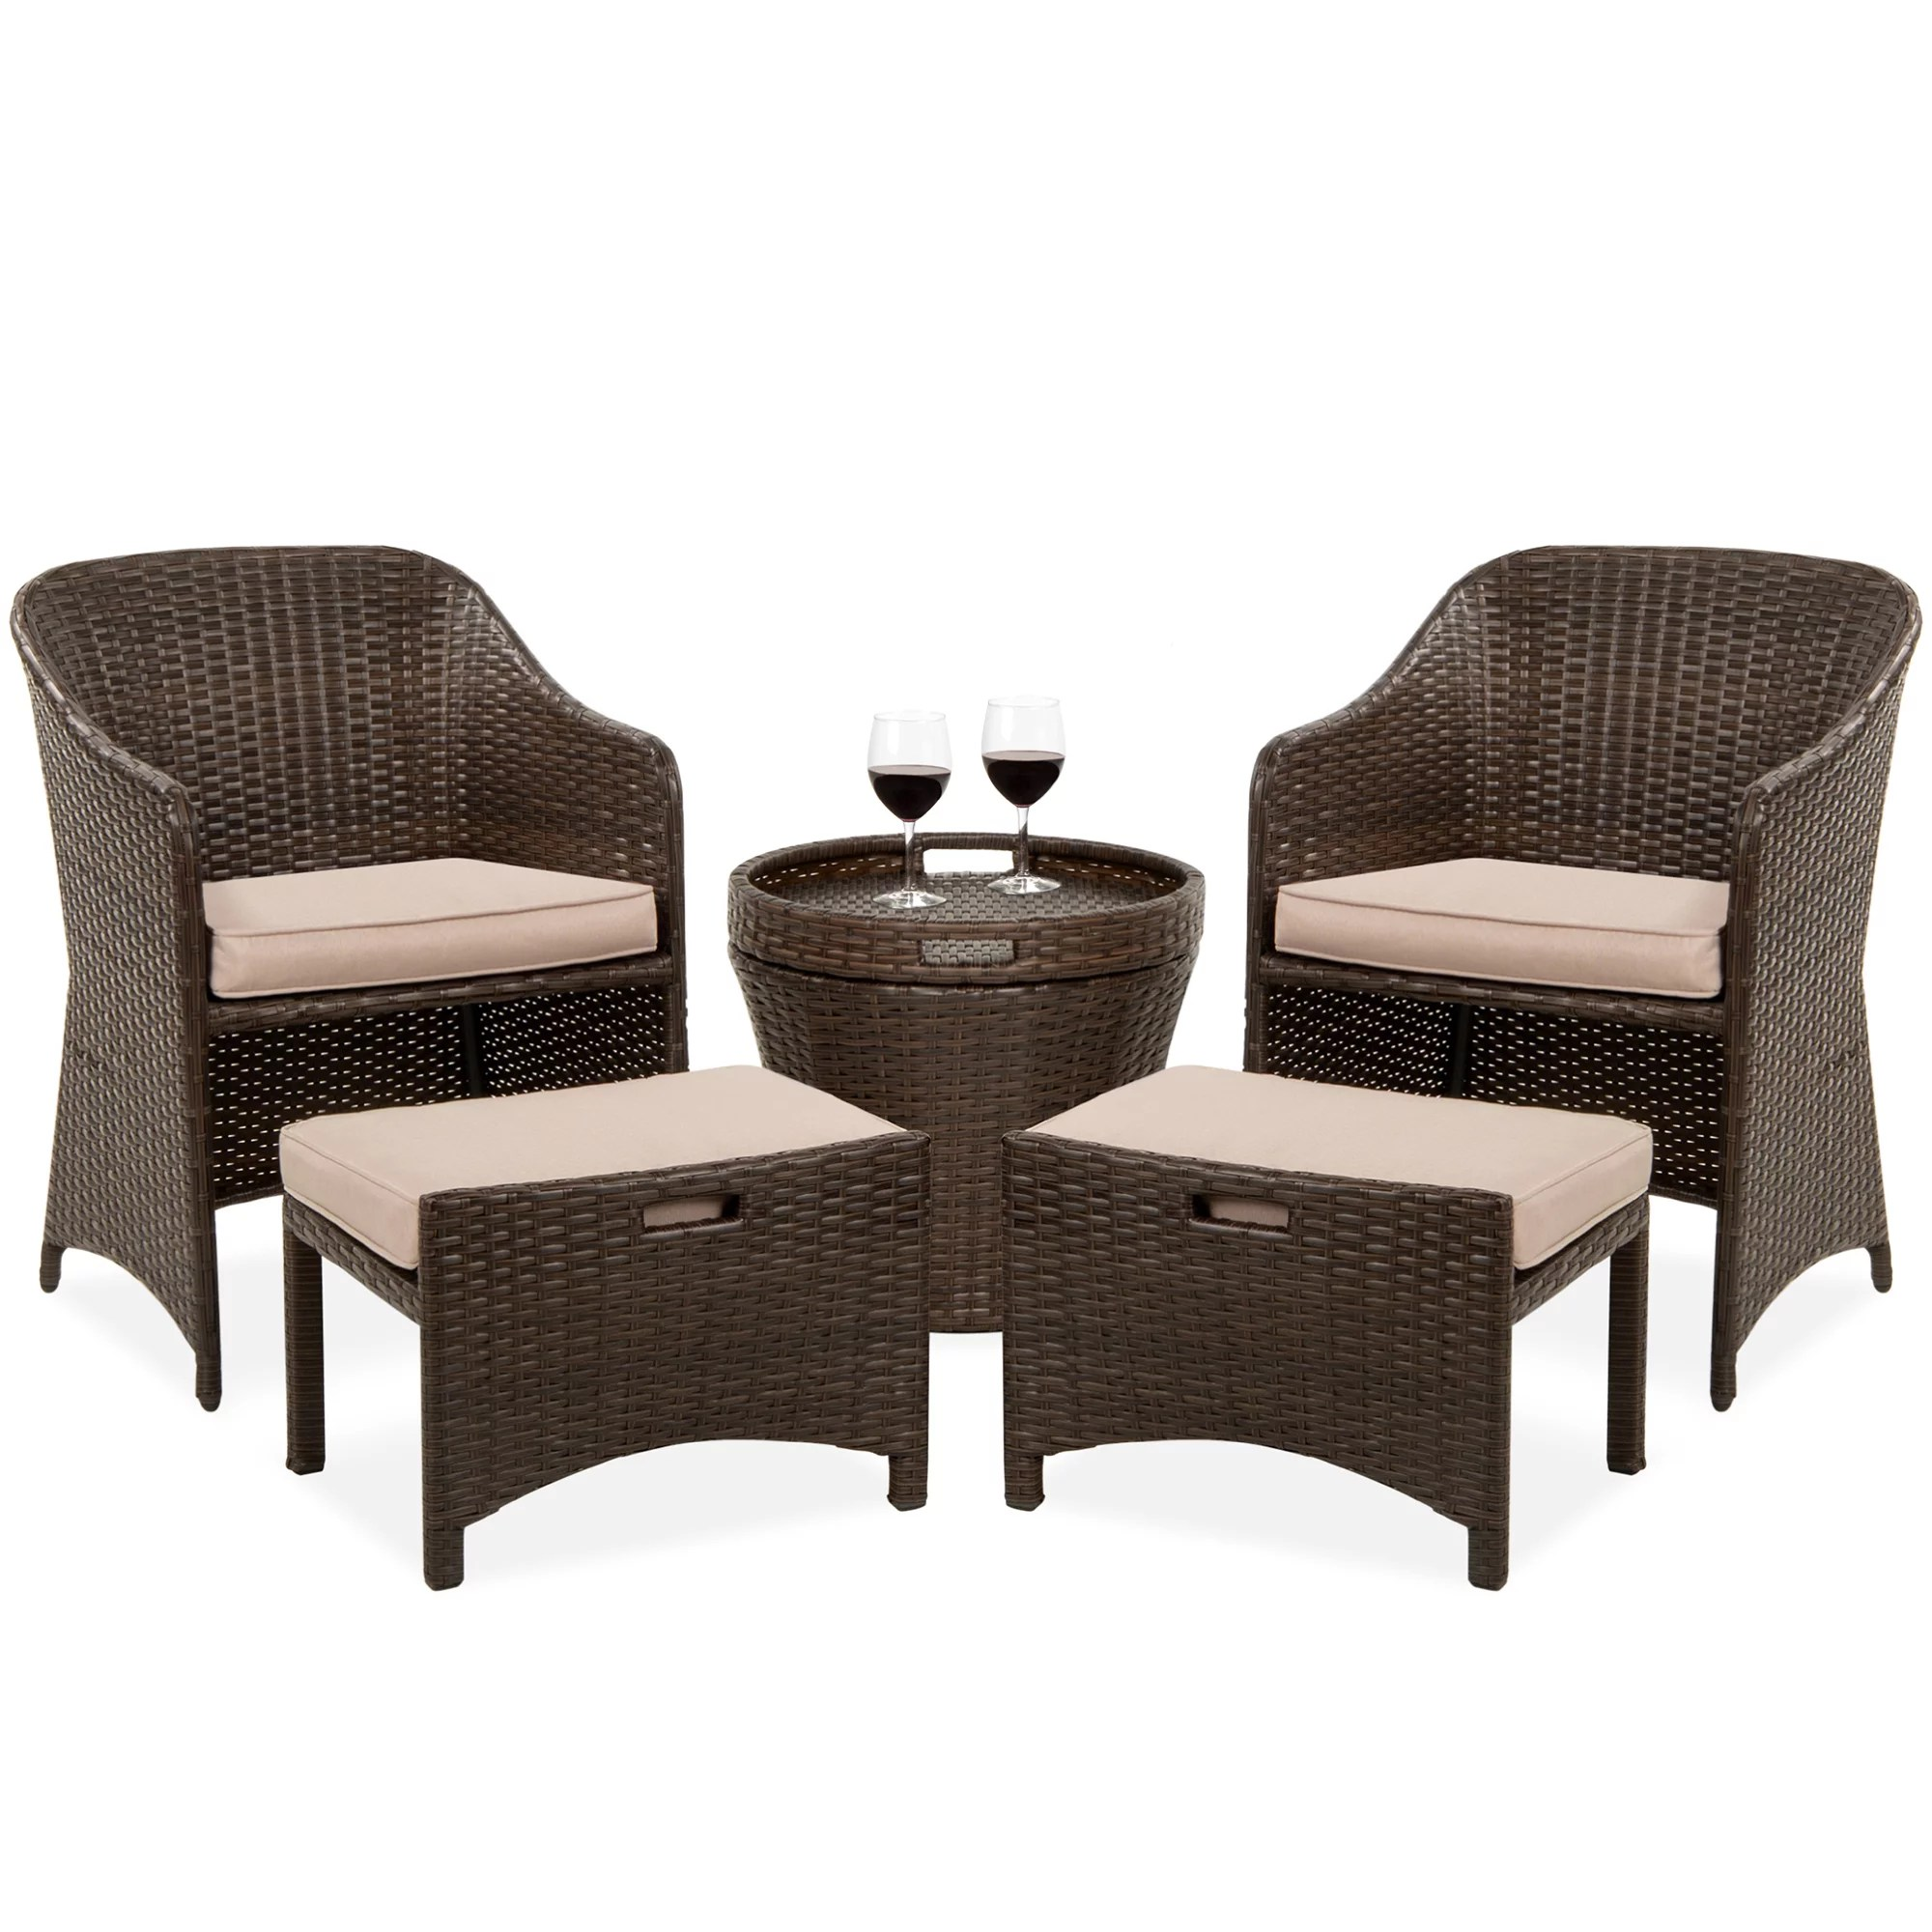 best choice products 5 piece outdoor wicker patio bistro space saving furniture set w storage table no assembly brown